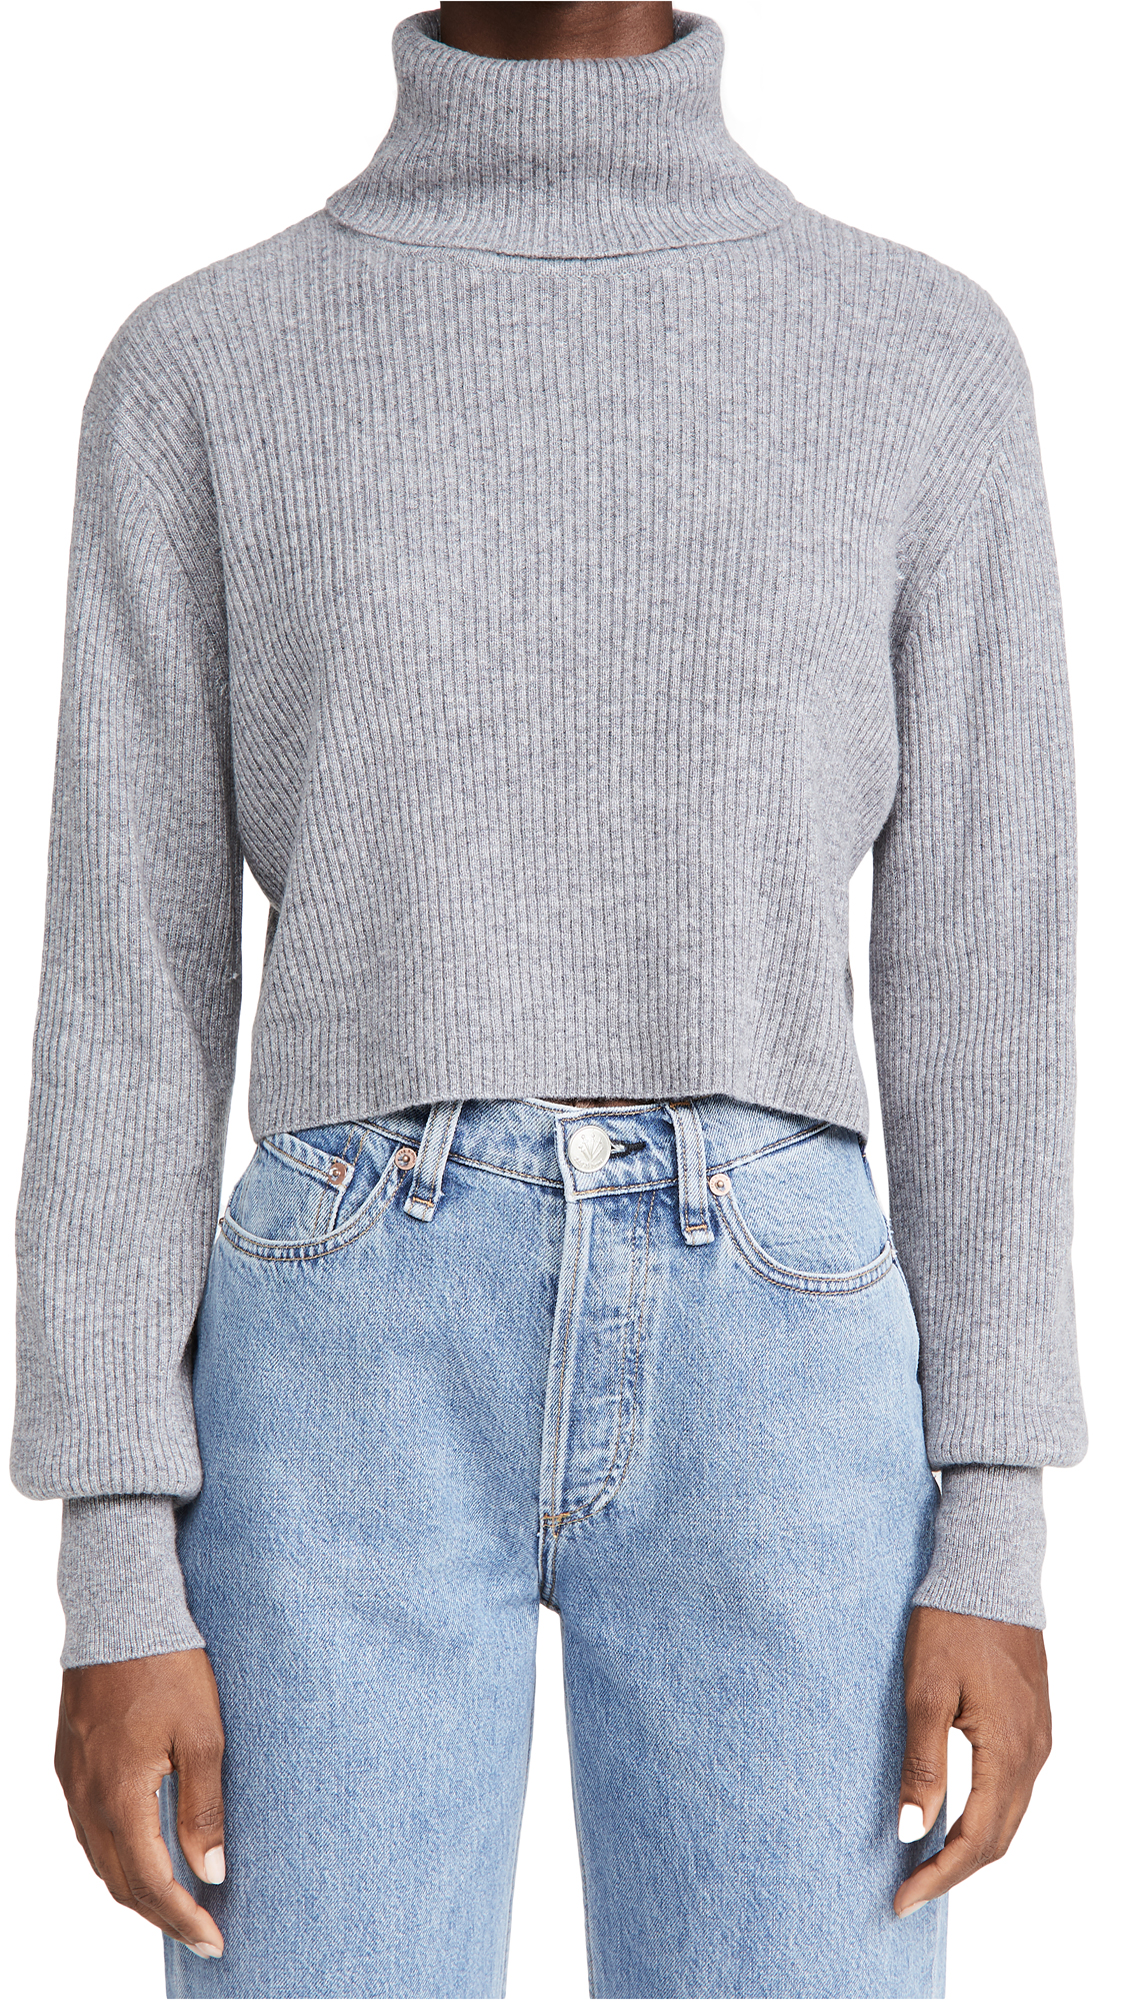 Reformation Cashmere Luisa Sweater